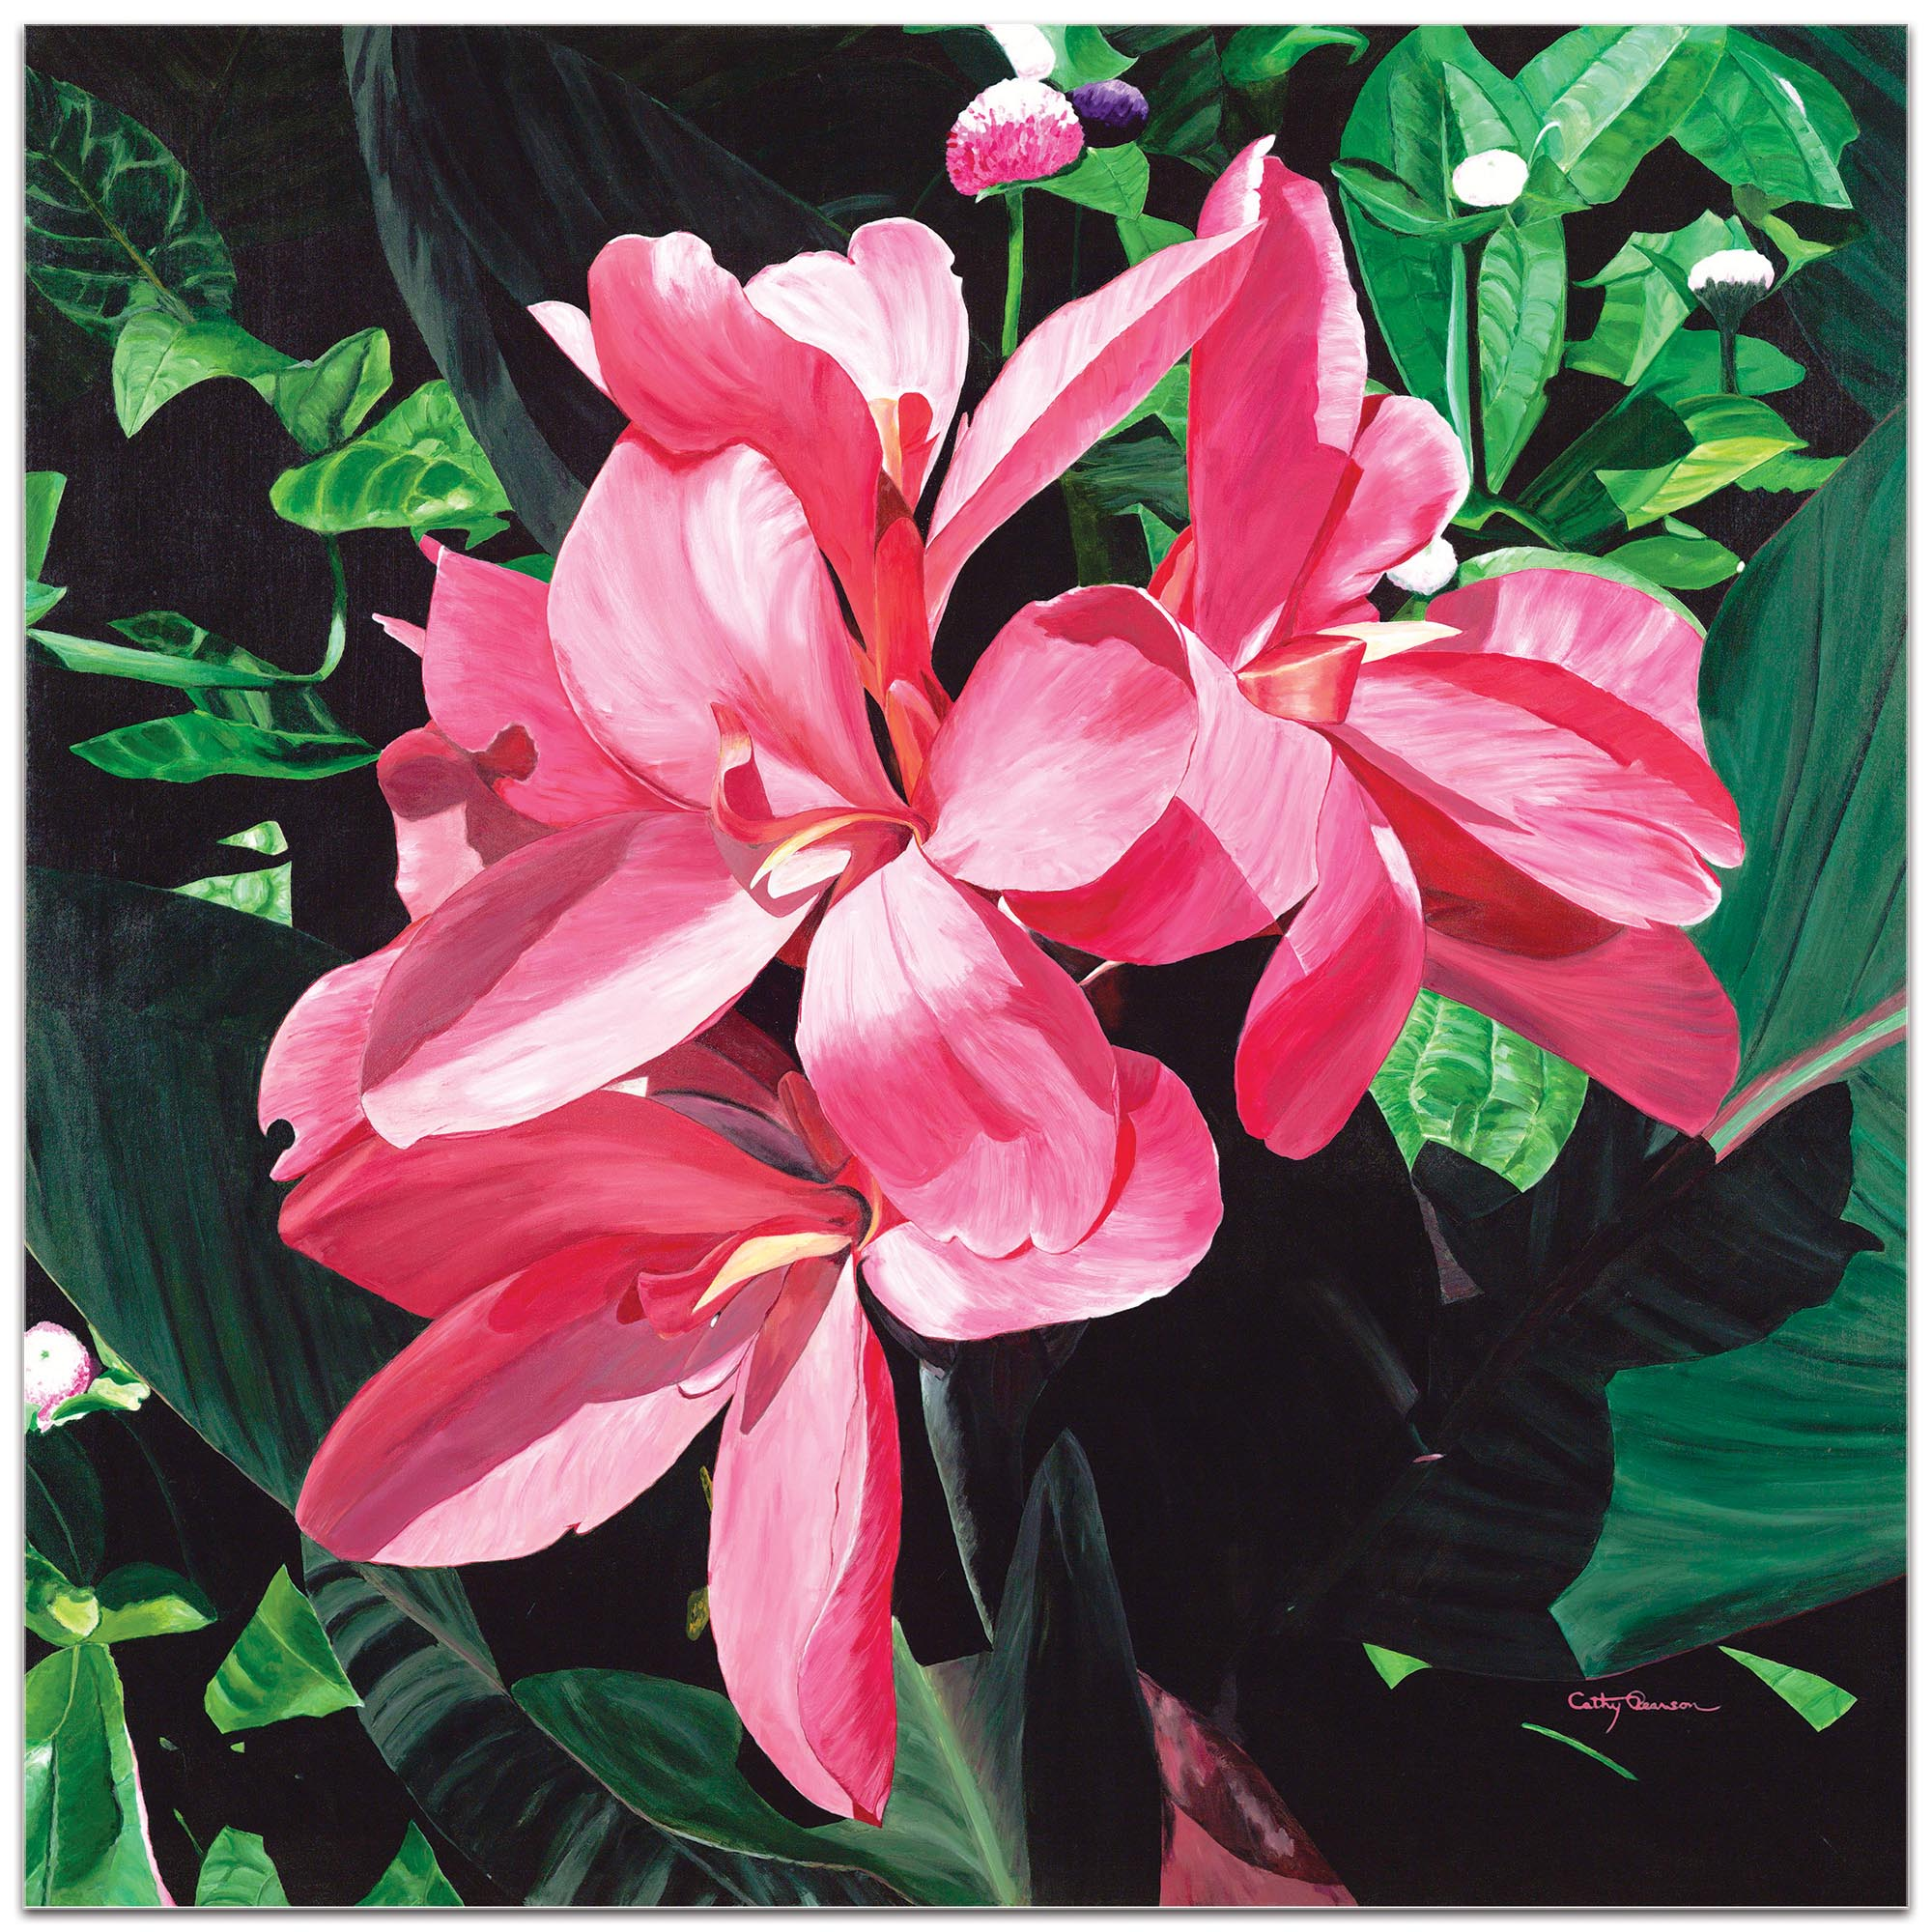 Traditional Wall Art 'Exotic Lilies' - Floral Decor on Metal or Plexiglass - Image 2